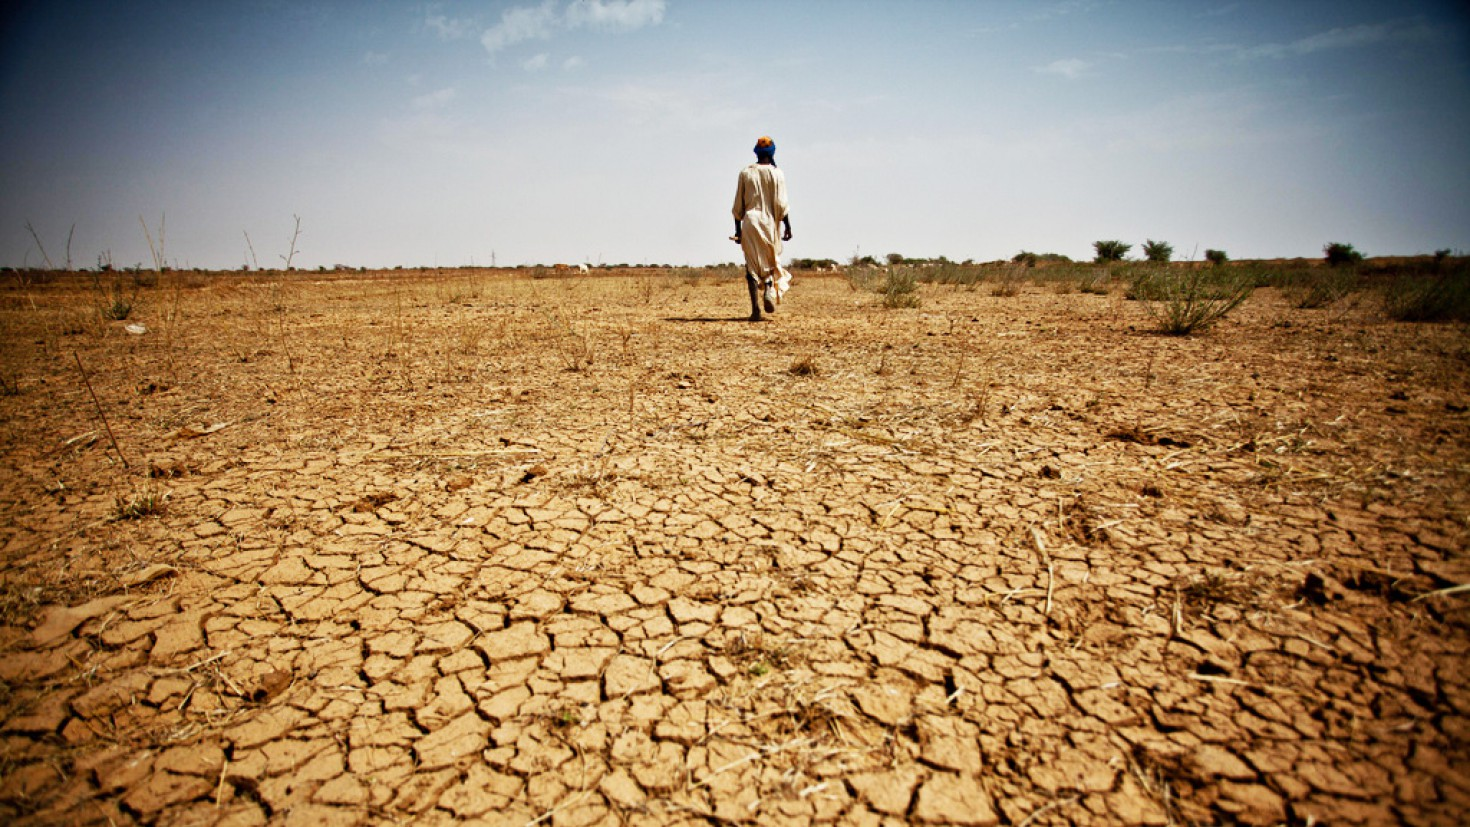 Arid soils in Mauritania, 2013. Longer, hotter, more regular heat waves could have a damaging effect on life expectancy and crop production in Africa.  Photo credit: oxfam/flickr/creative commons